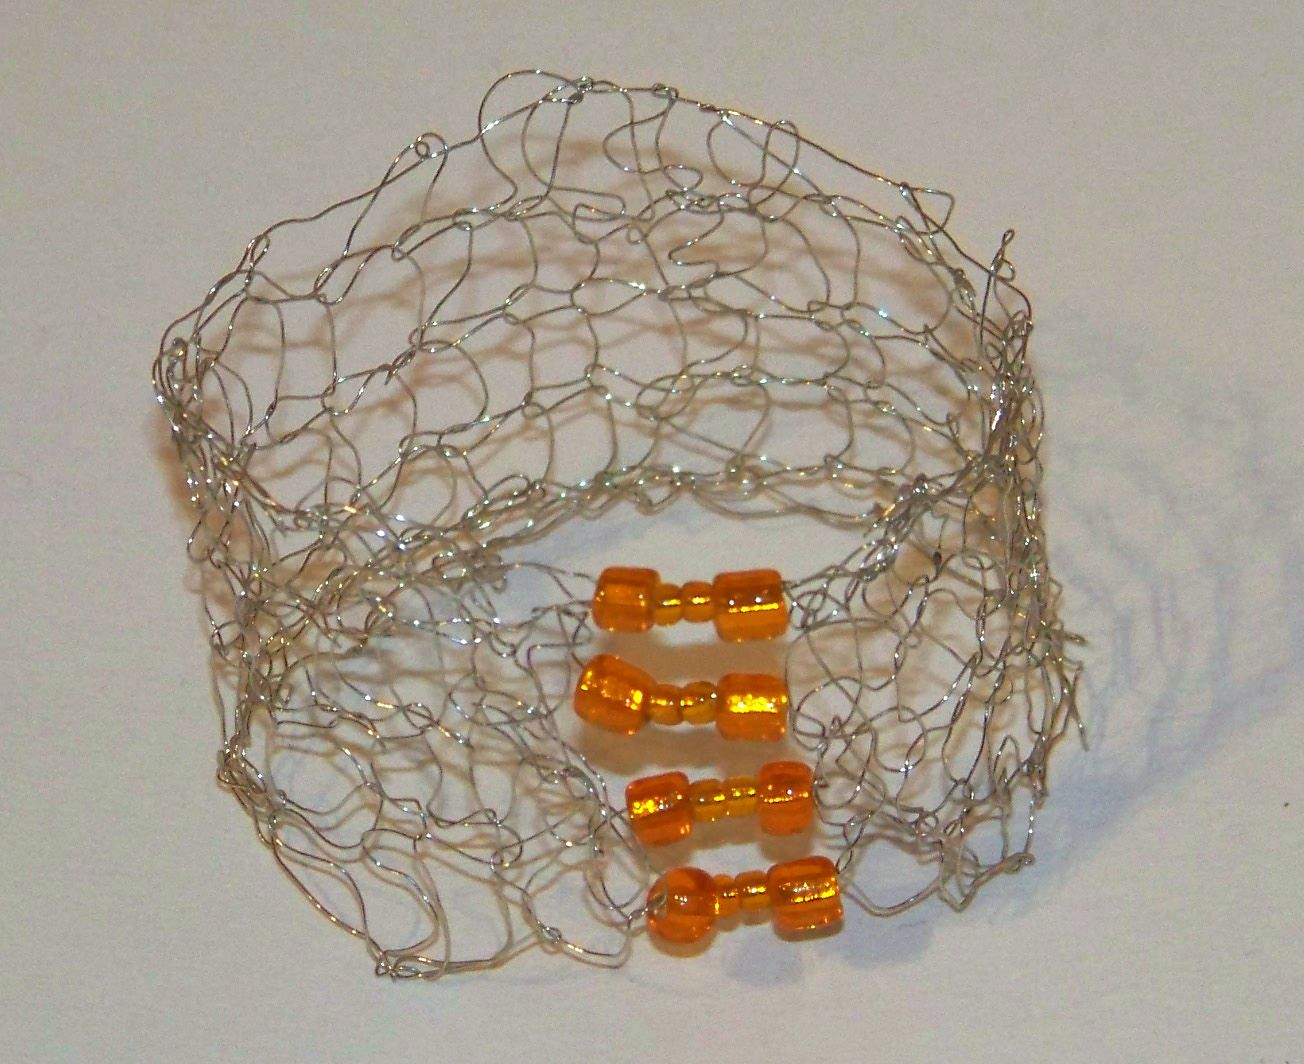 Knitting With Wire Instructions : Knitting with wire on pinterest